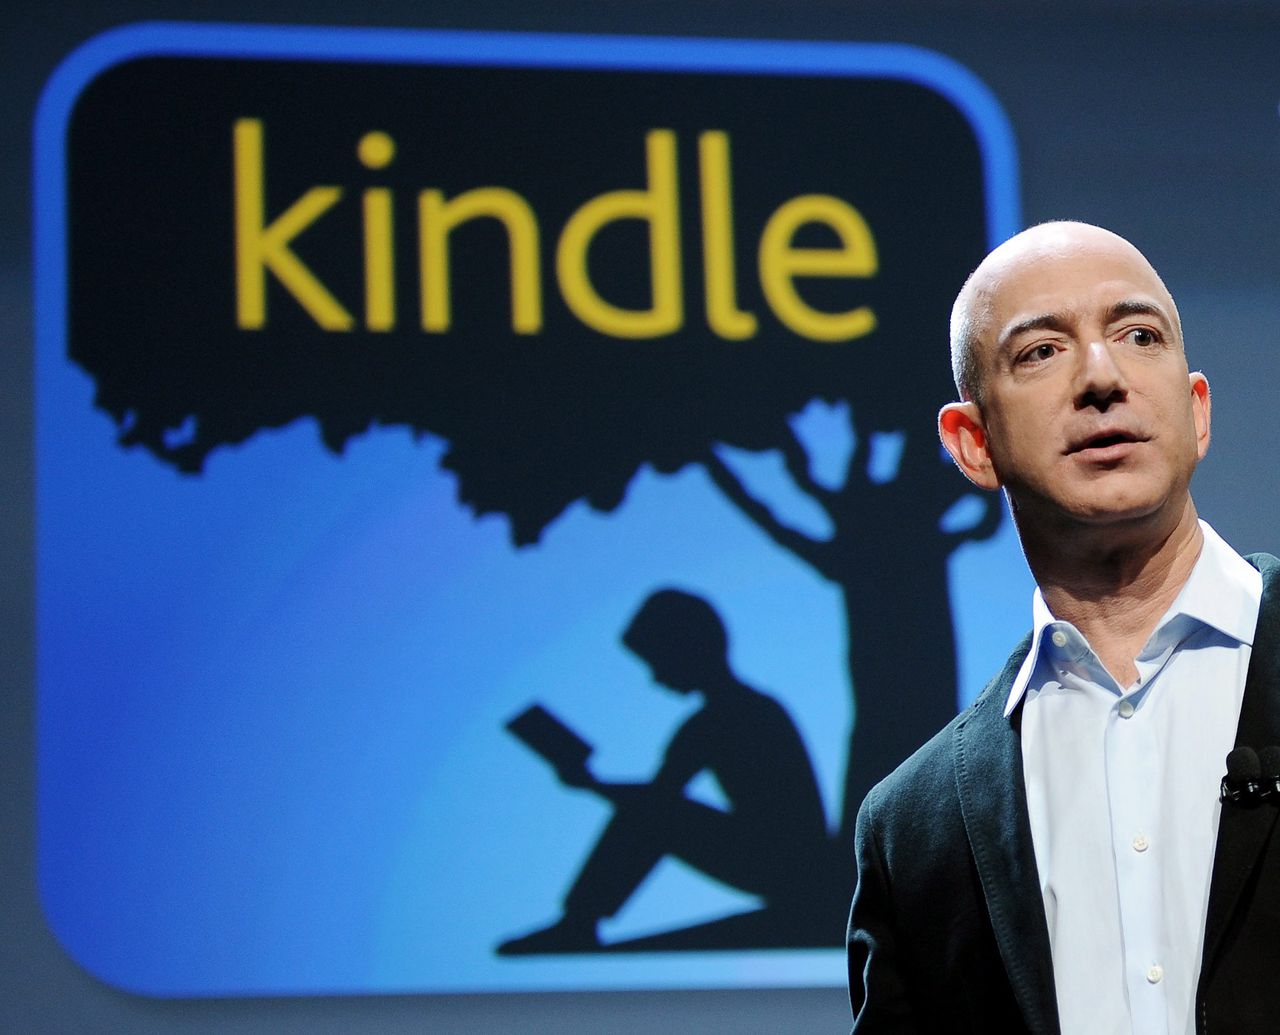 epa02939968 Jeff Bezos, CEO of Amazon.com, speaks during a press conference where he unveiled four new Kindle devices including the new Amazon tablet, the Amazon Fire, in New York, New York, USA, on 28 September 2011. Industry experts are expecting the Fire to directly compete with the Apple iPad. EPA/JUSTIN LANE